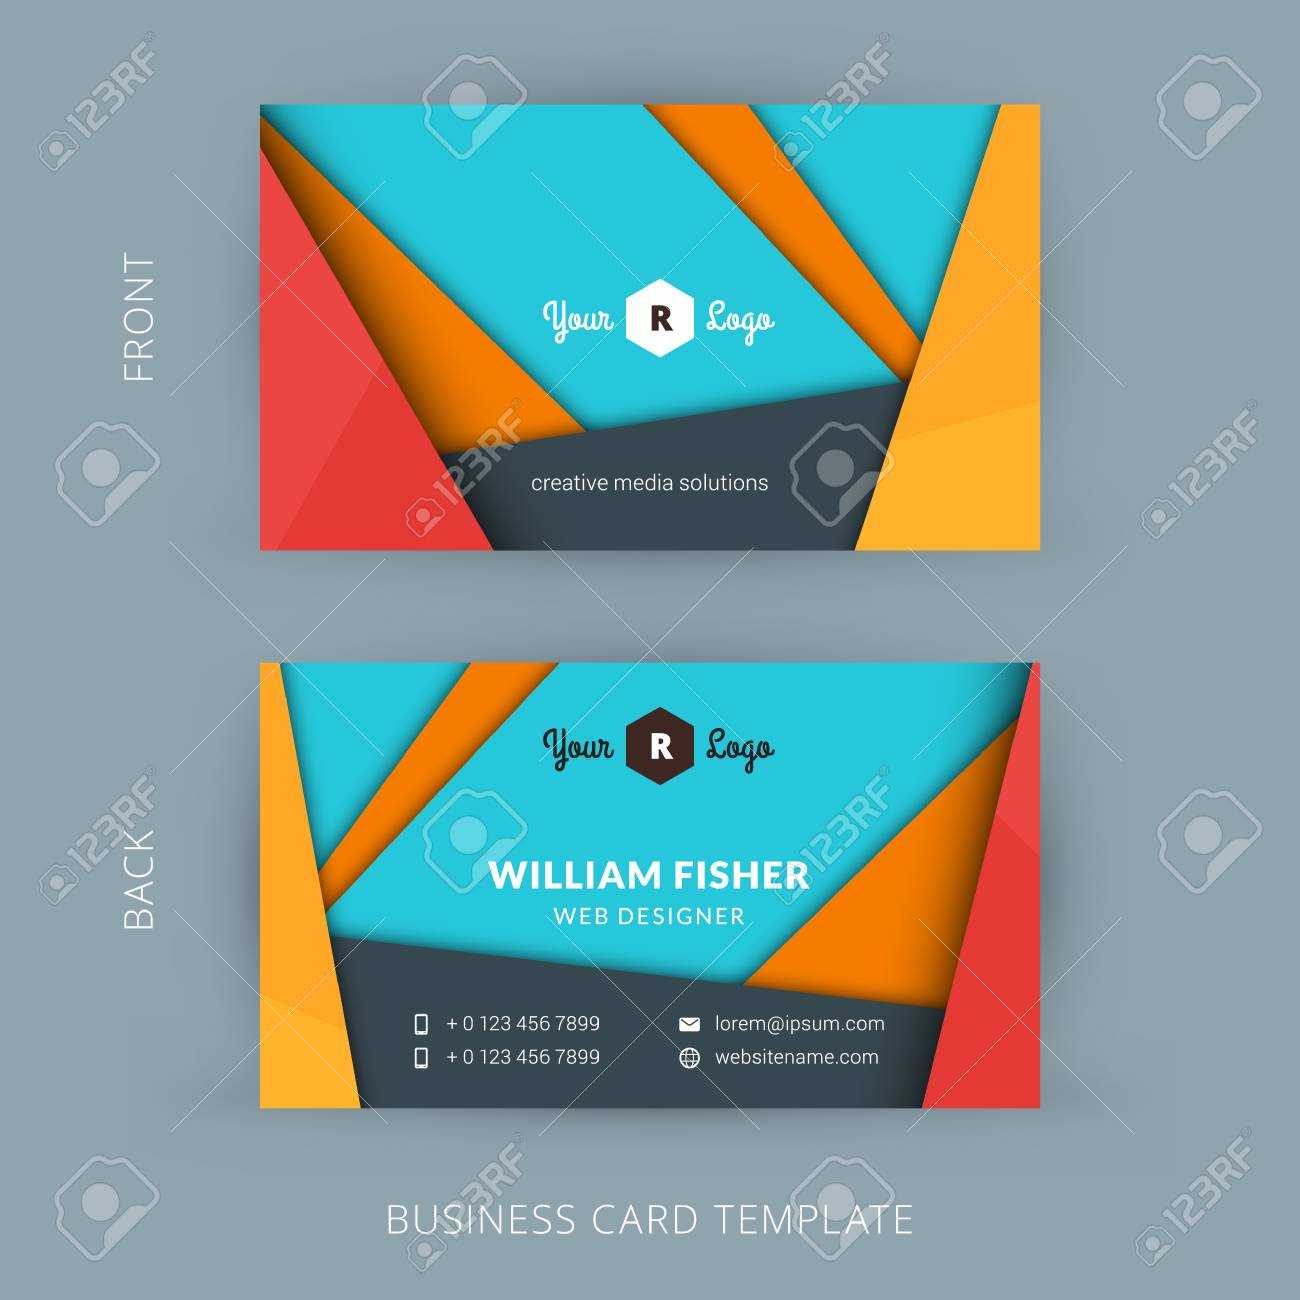 Creative And Clean Business Card Template With Material Design Abstract  Colorful Background Intended For Web Design Business Cards Templates